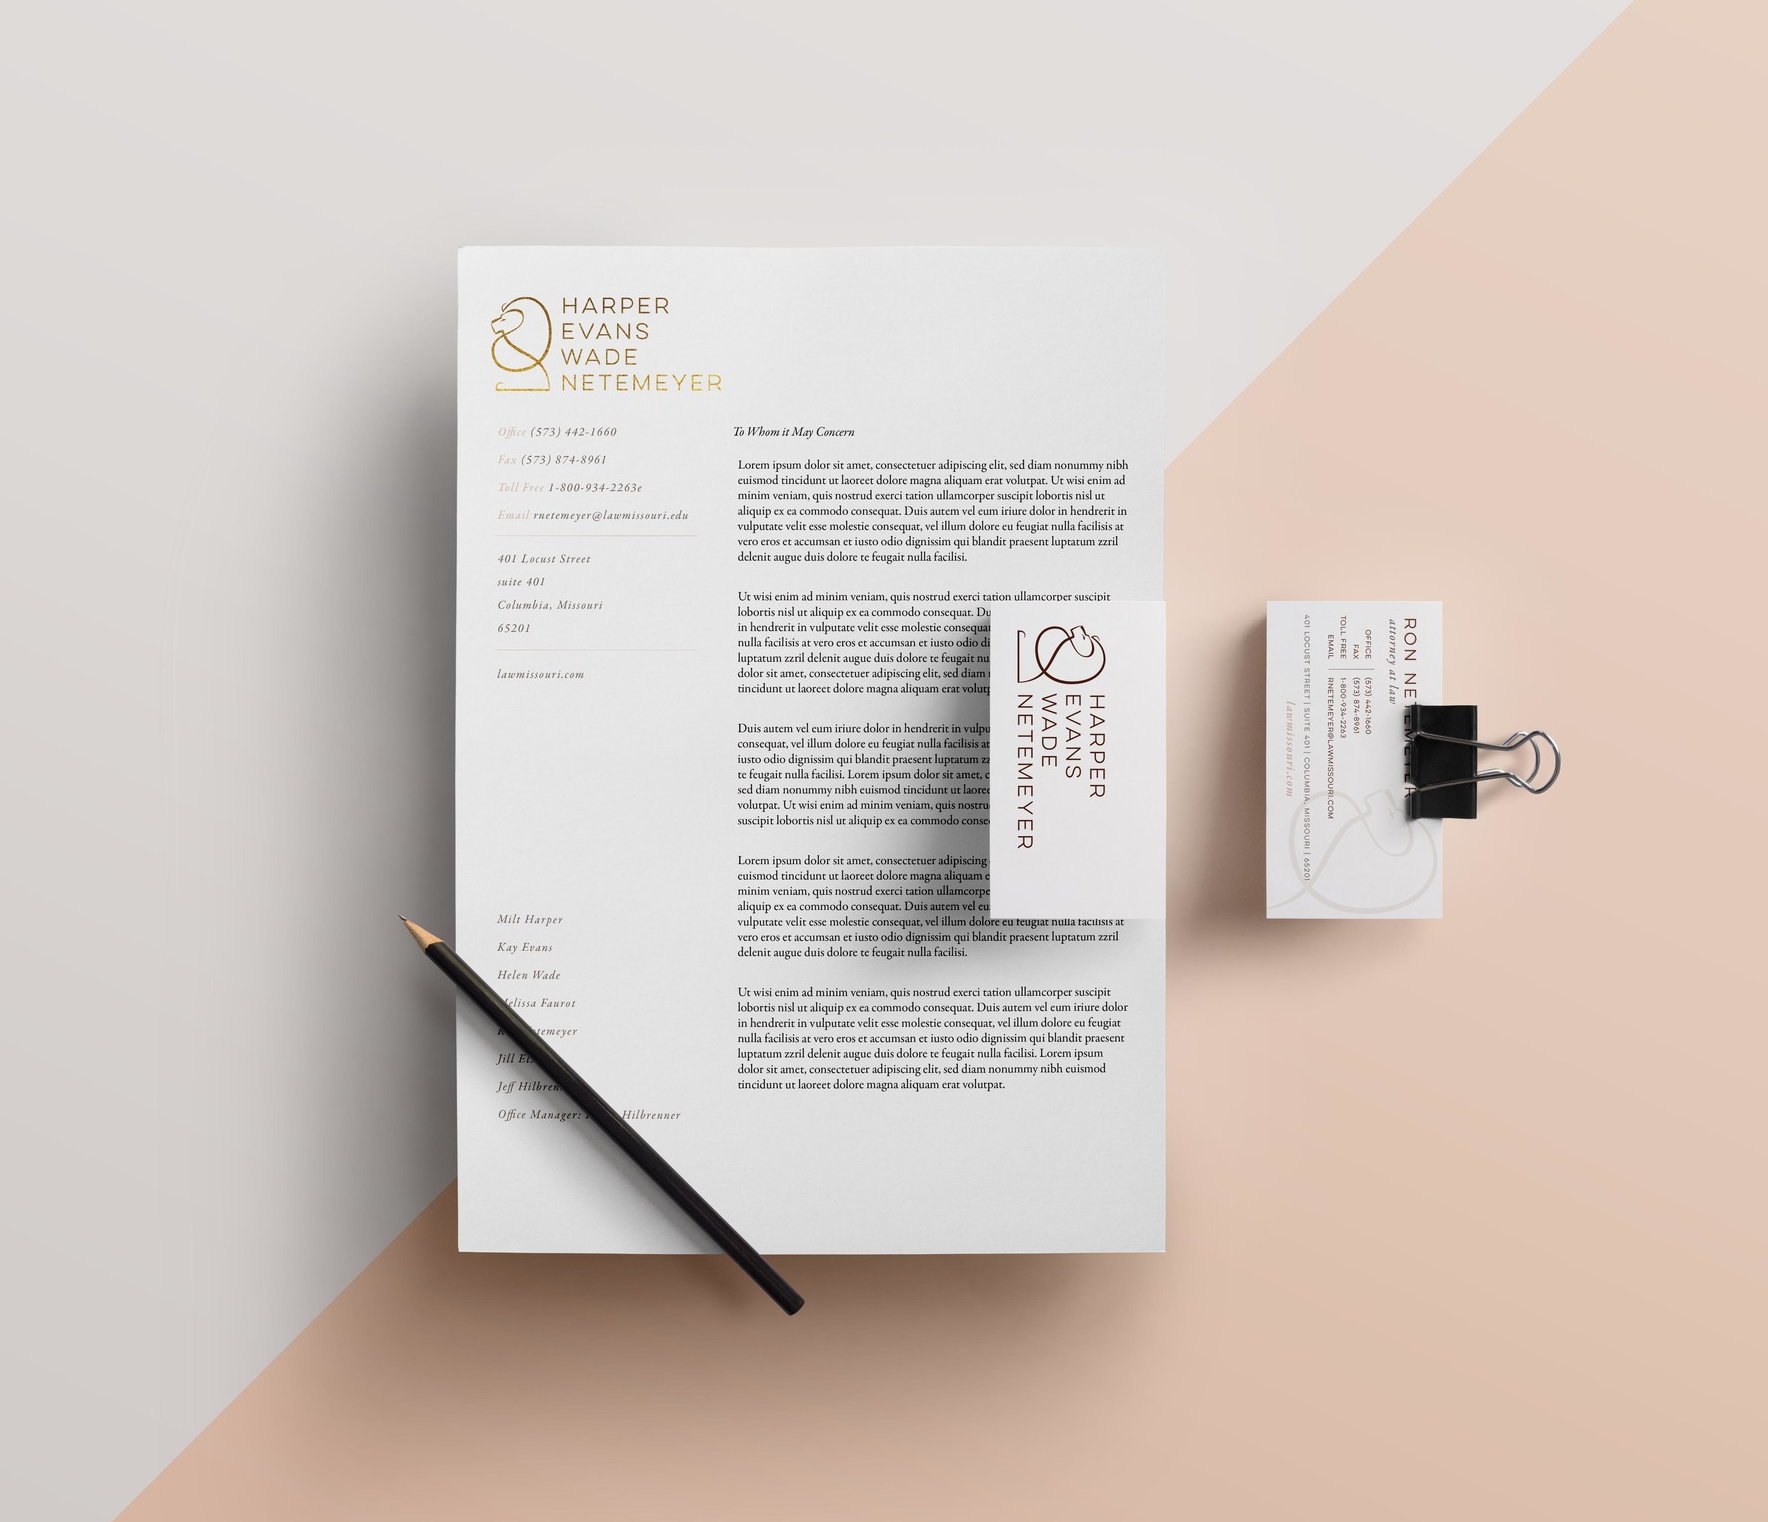 Harper evans wade netemeyer law firm letterhead and business cards harper evans wade netemeyer law firm letterhead and business cards reheart Image collections